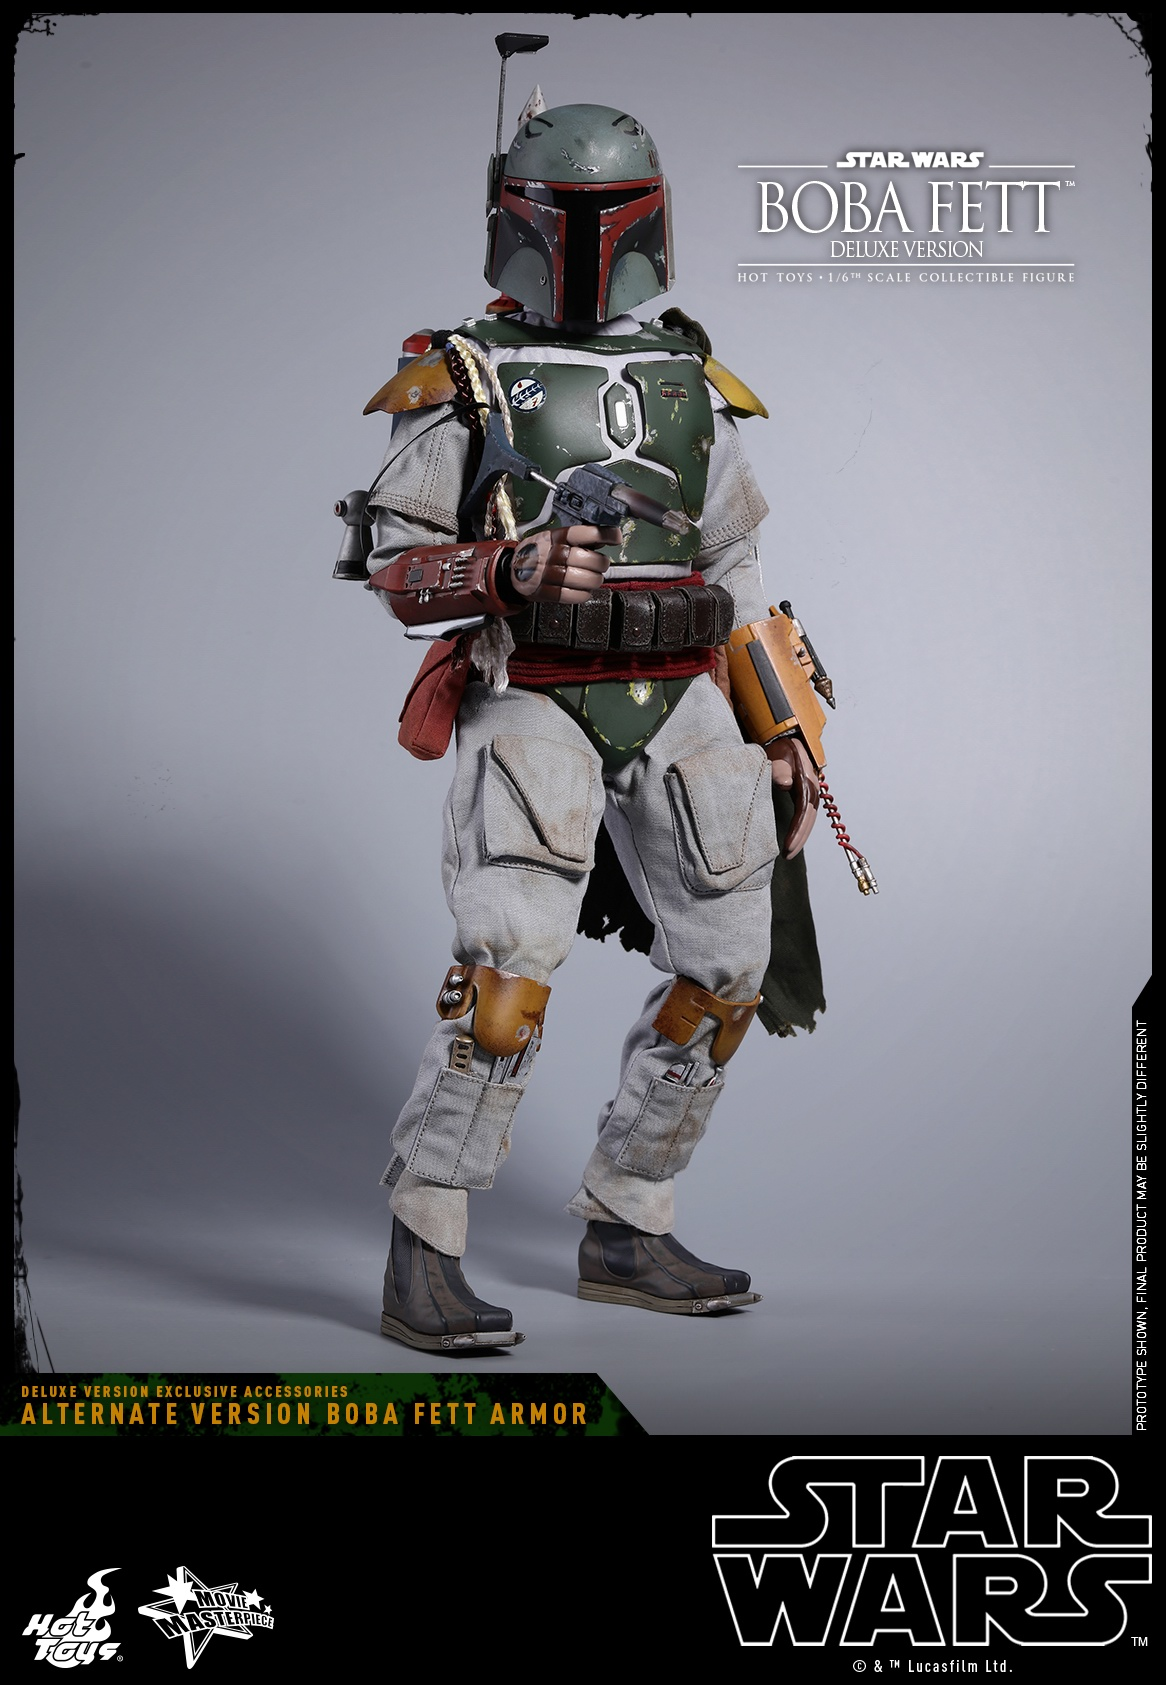 Hot Toys - Star Wars - Boba Fett collectible figure (Deluxe)_PR5.jpg